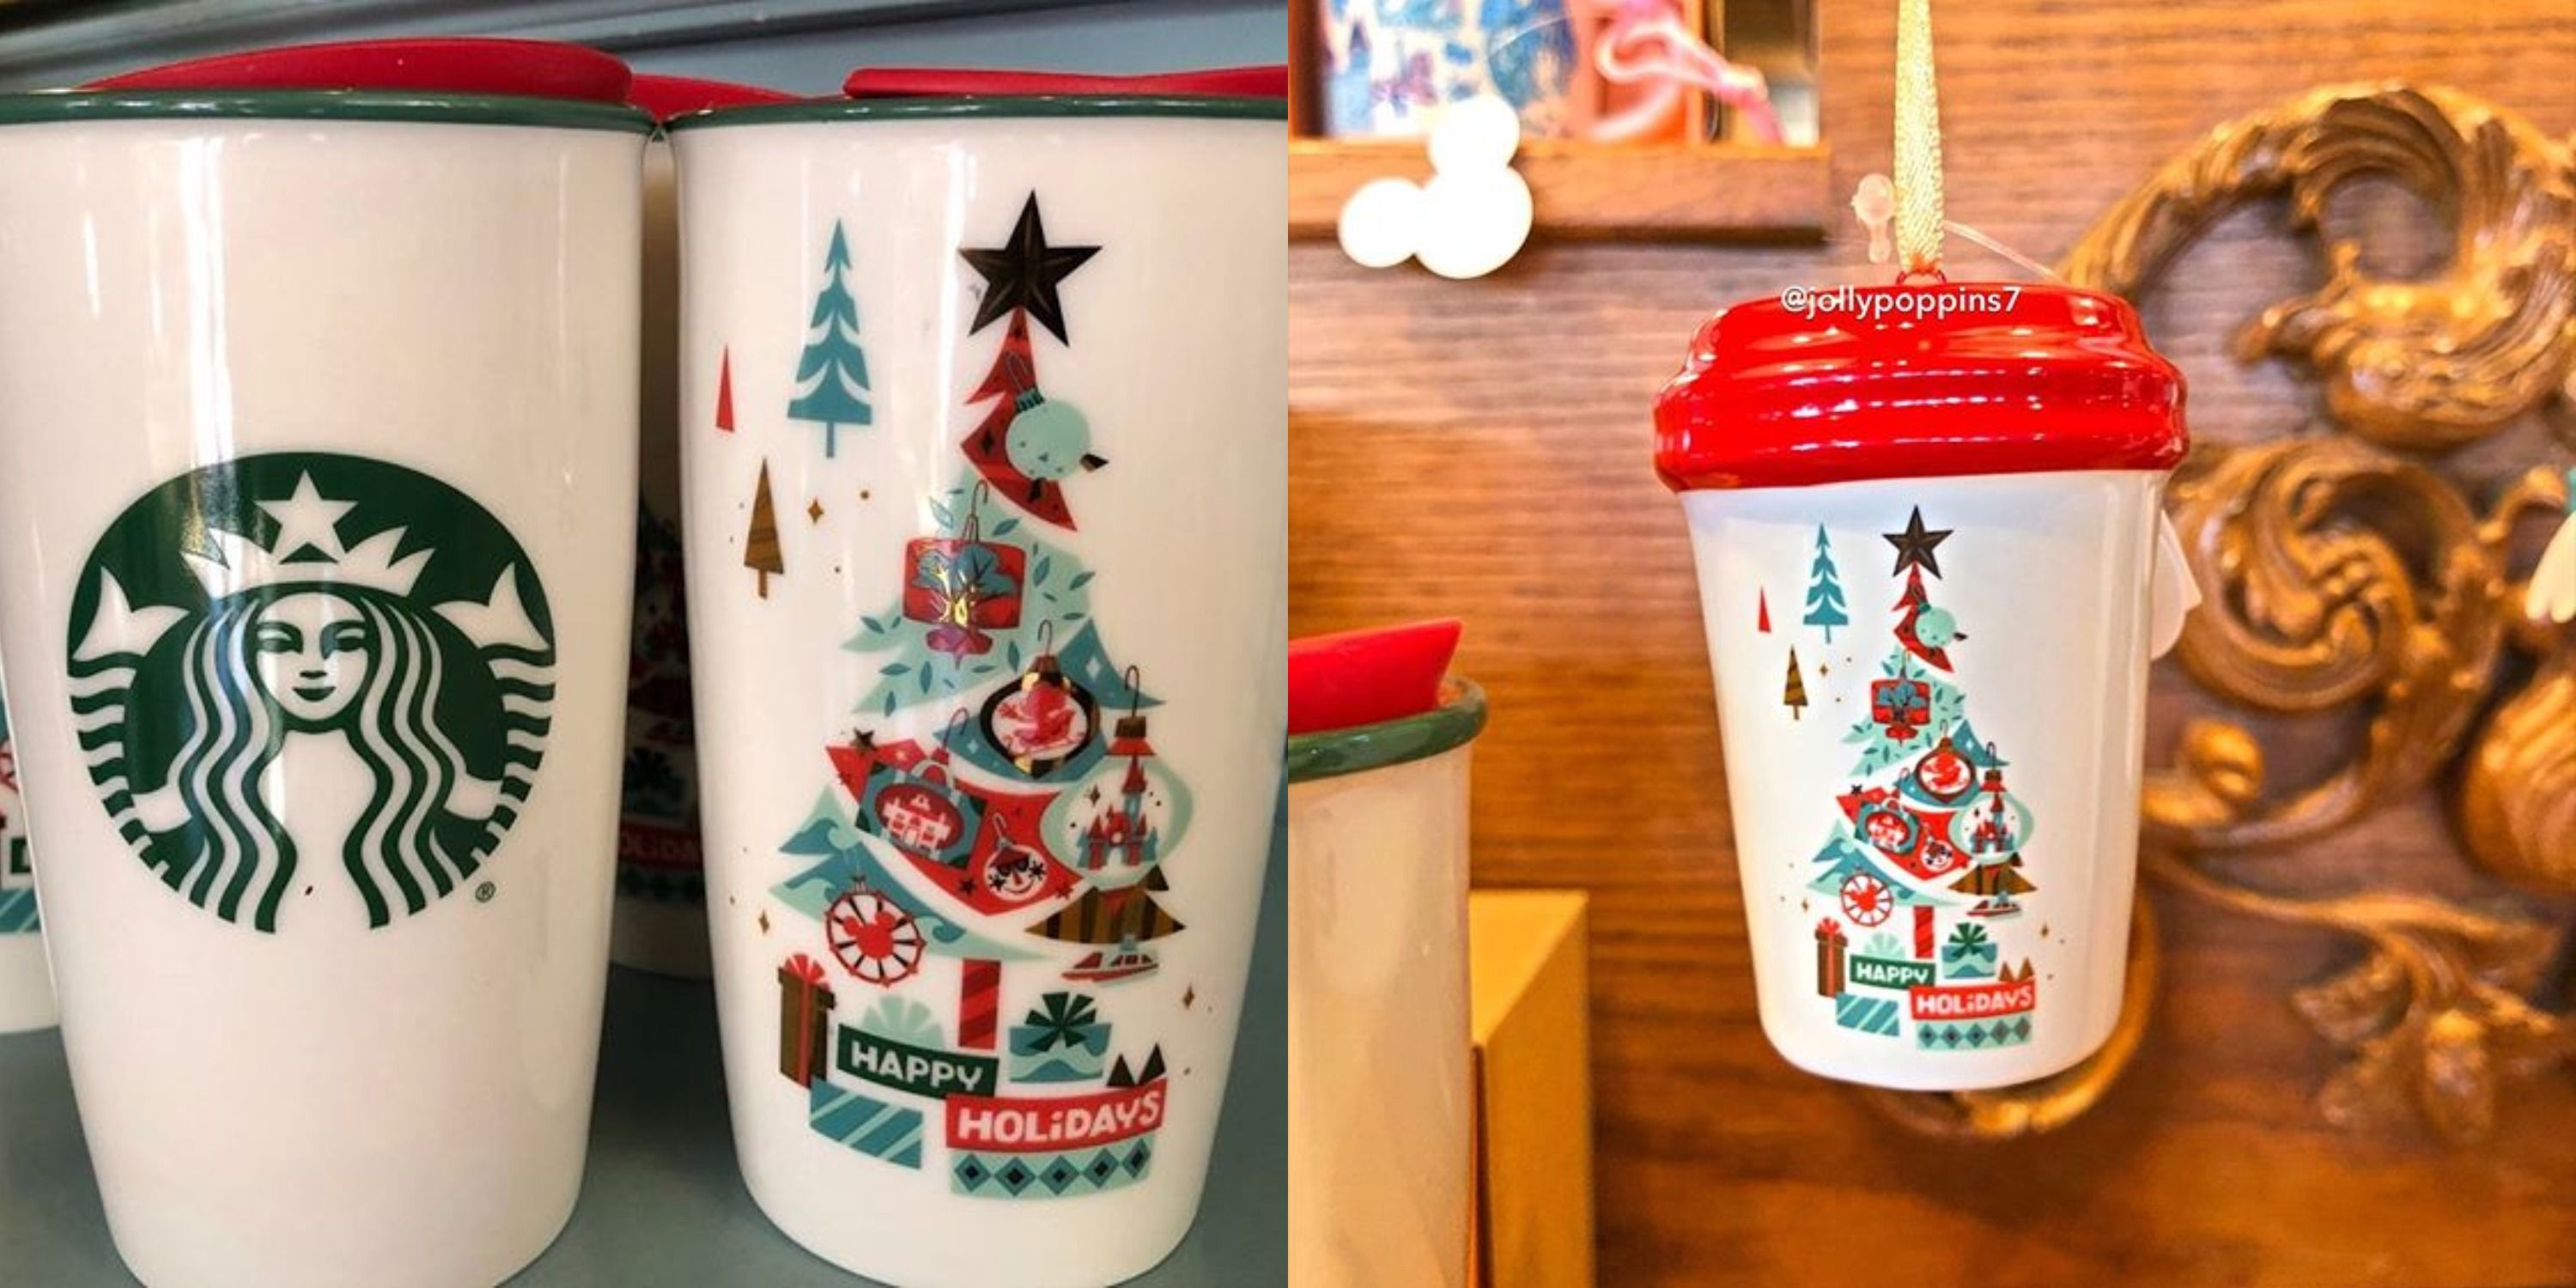 Starbucks Christmas Ornaments 2019.Disney Released New Holiday Mugs And Ornaments At Its Starbucks